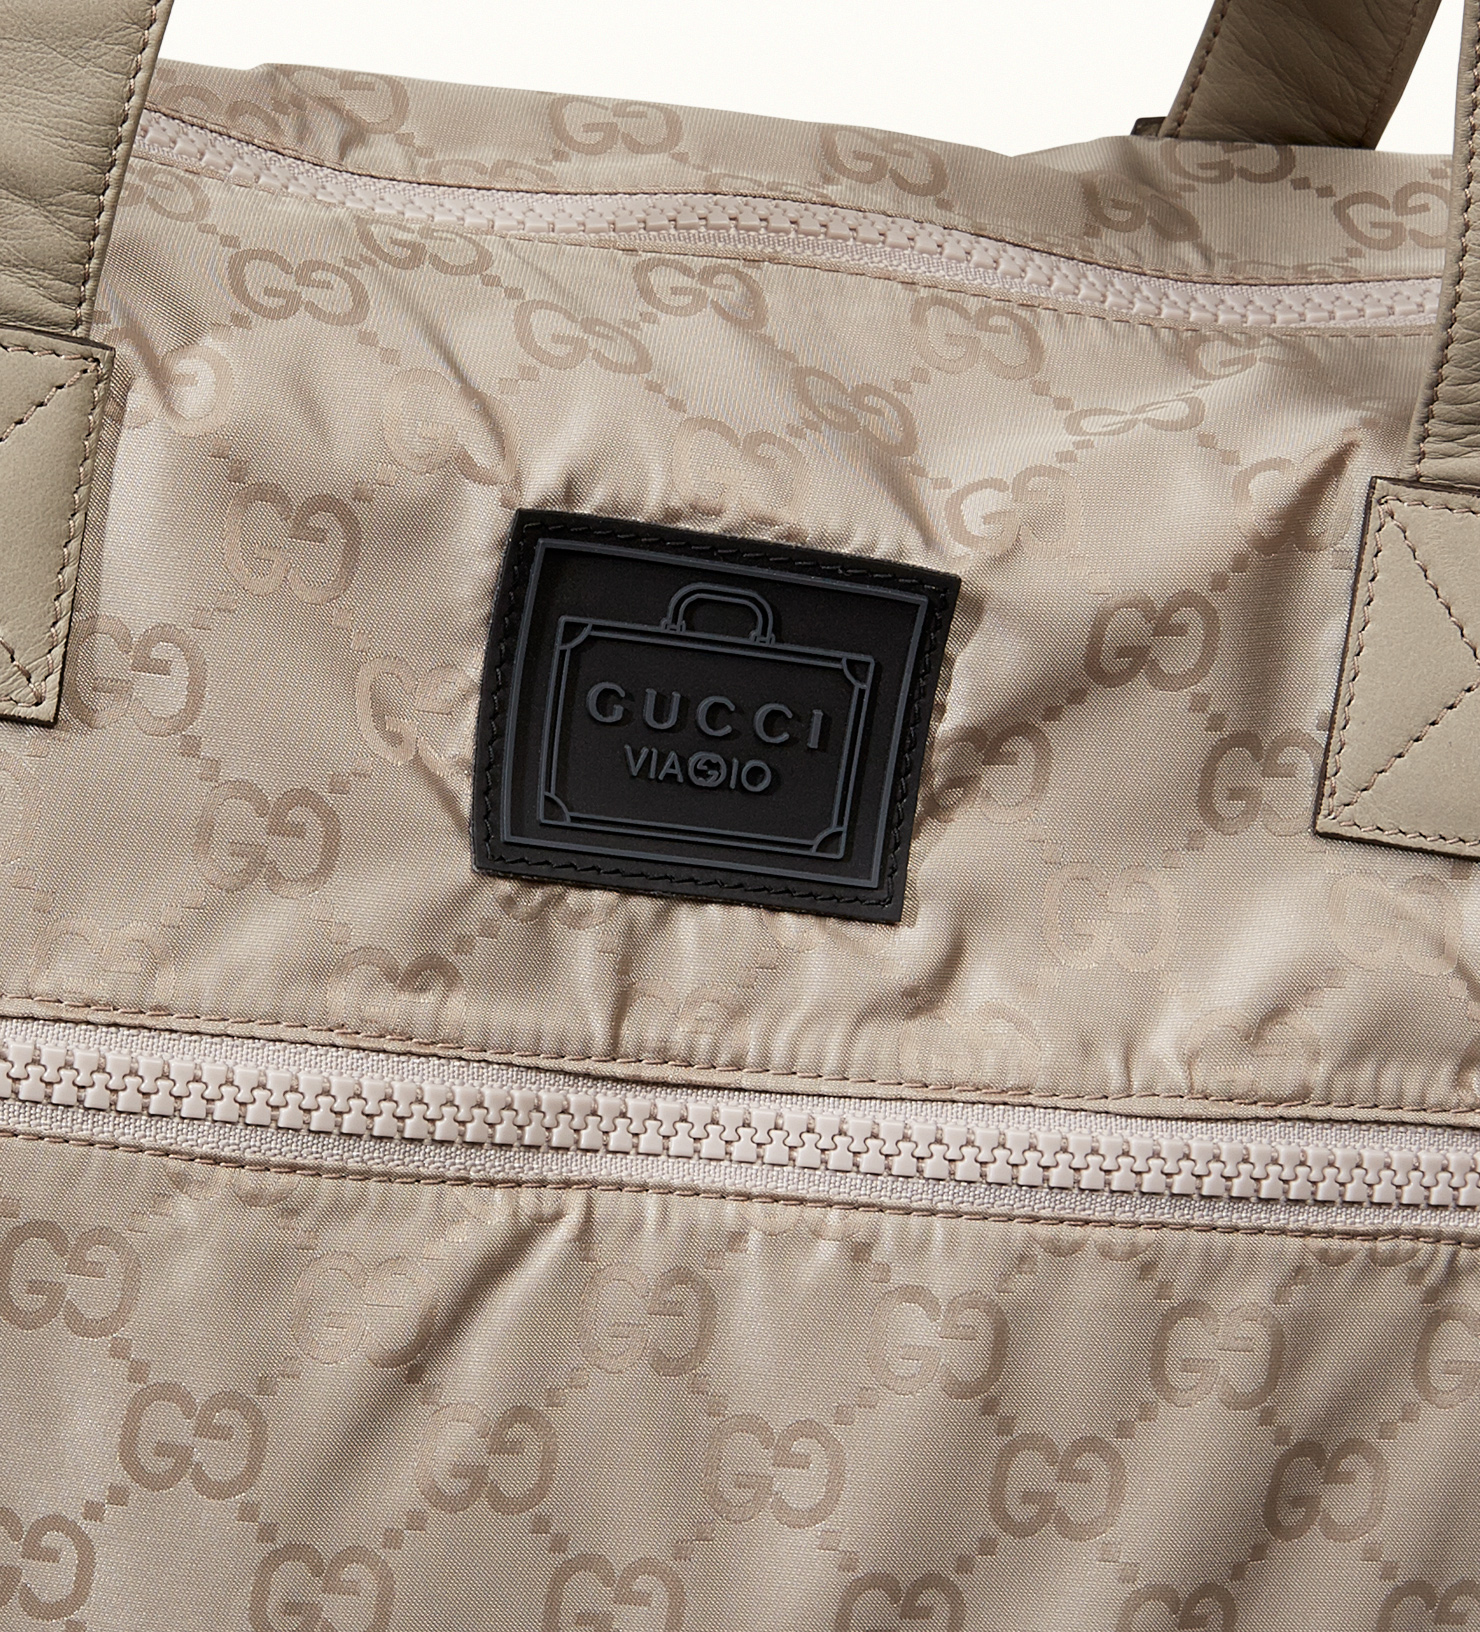 7fd1a9bccd4a Lyst - Gucci Gg Nylon Duffel Bag From Viaggio Collection in Gray for Men